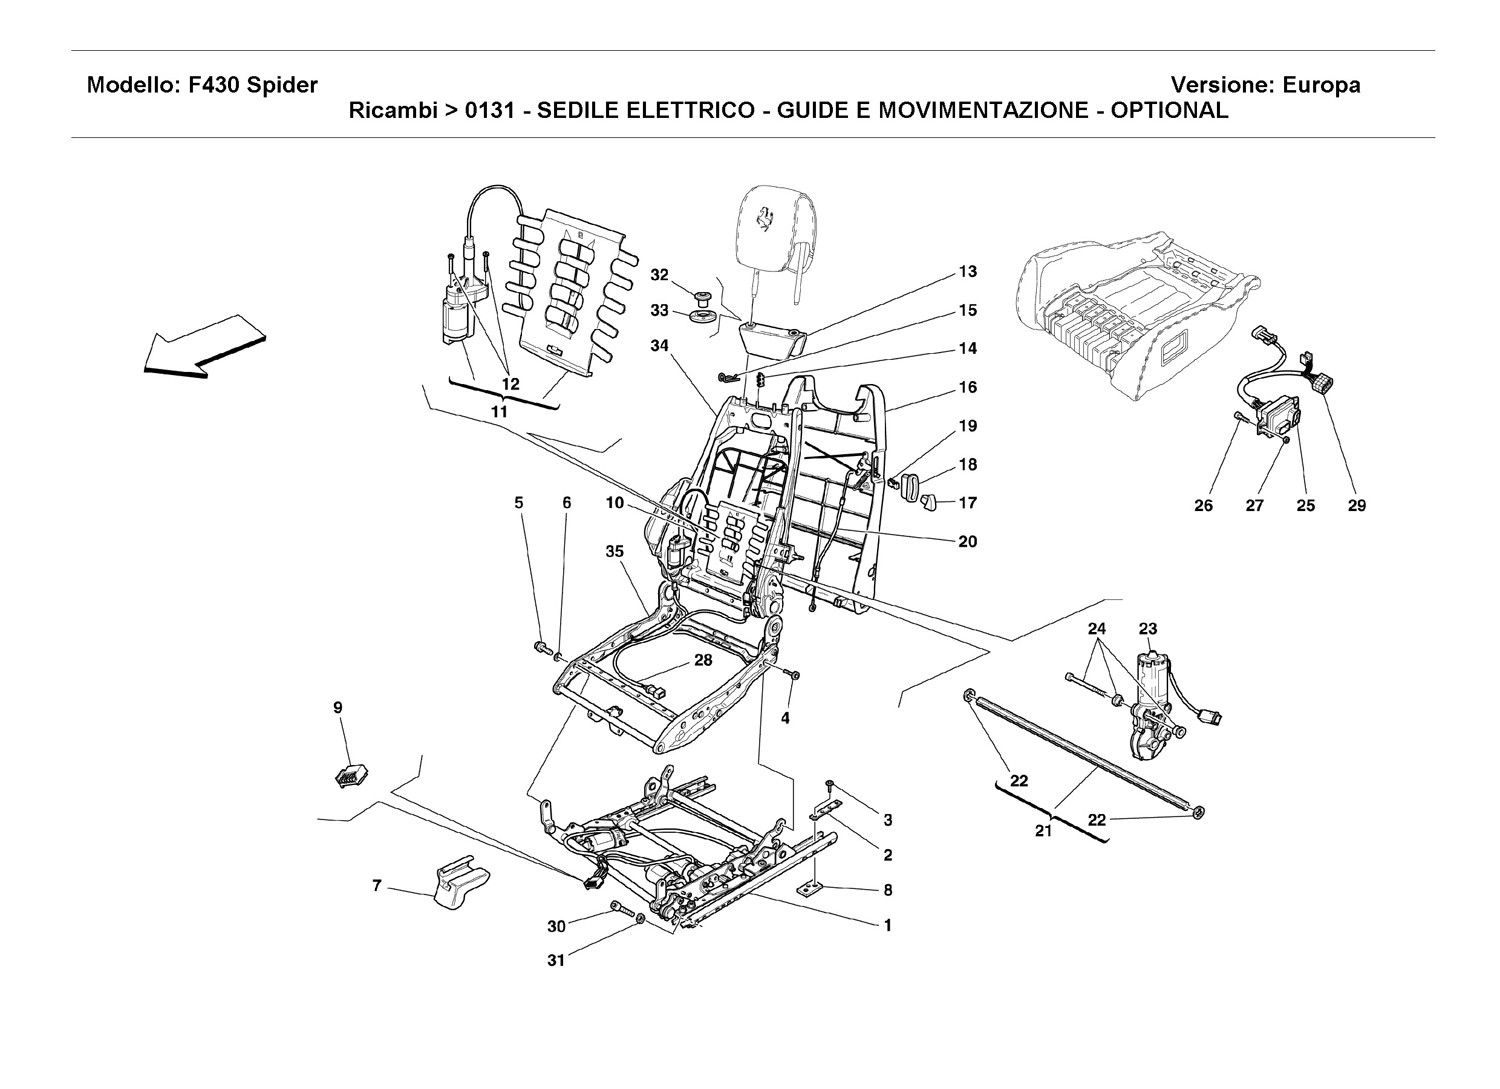 ELECTRICAL SEAT - GUIDE AND MOVEMENT - OPTIONAL